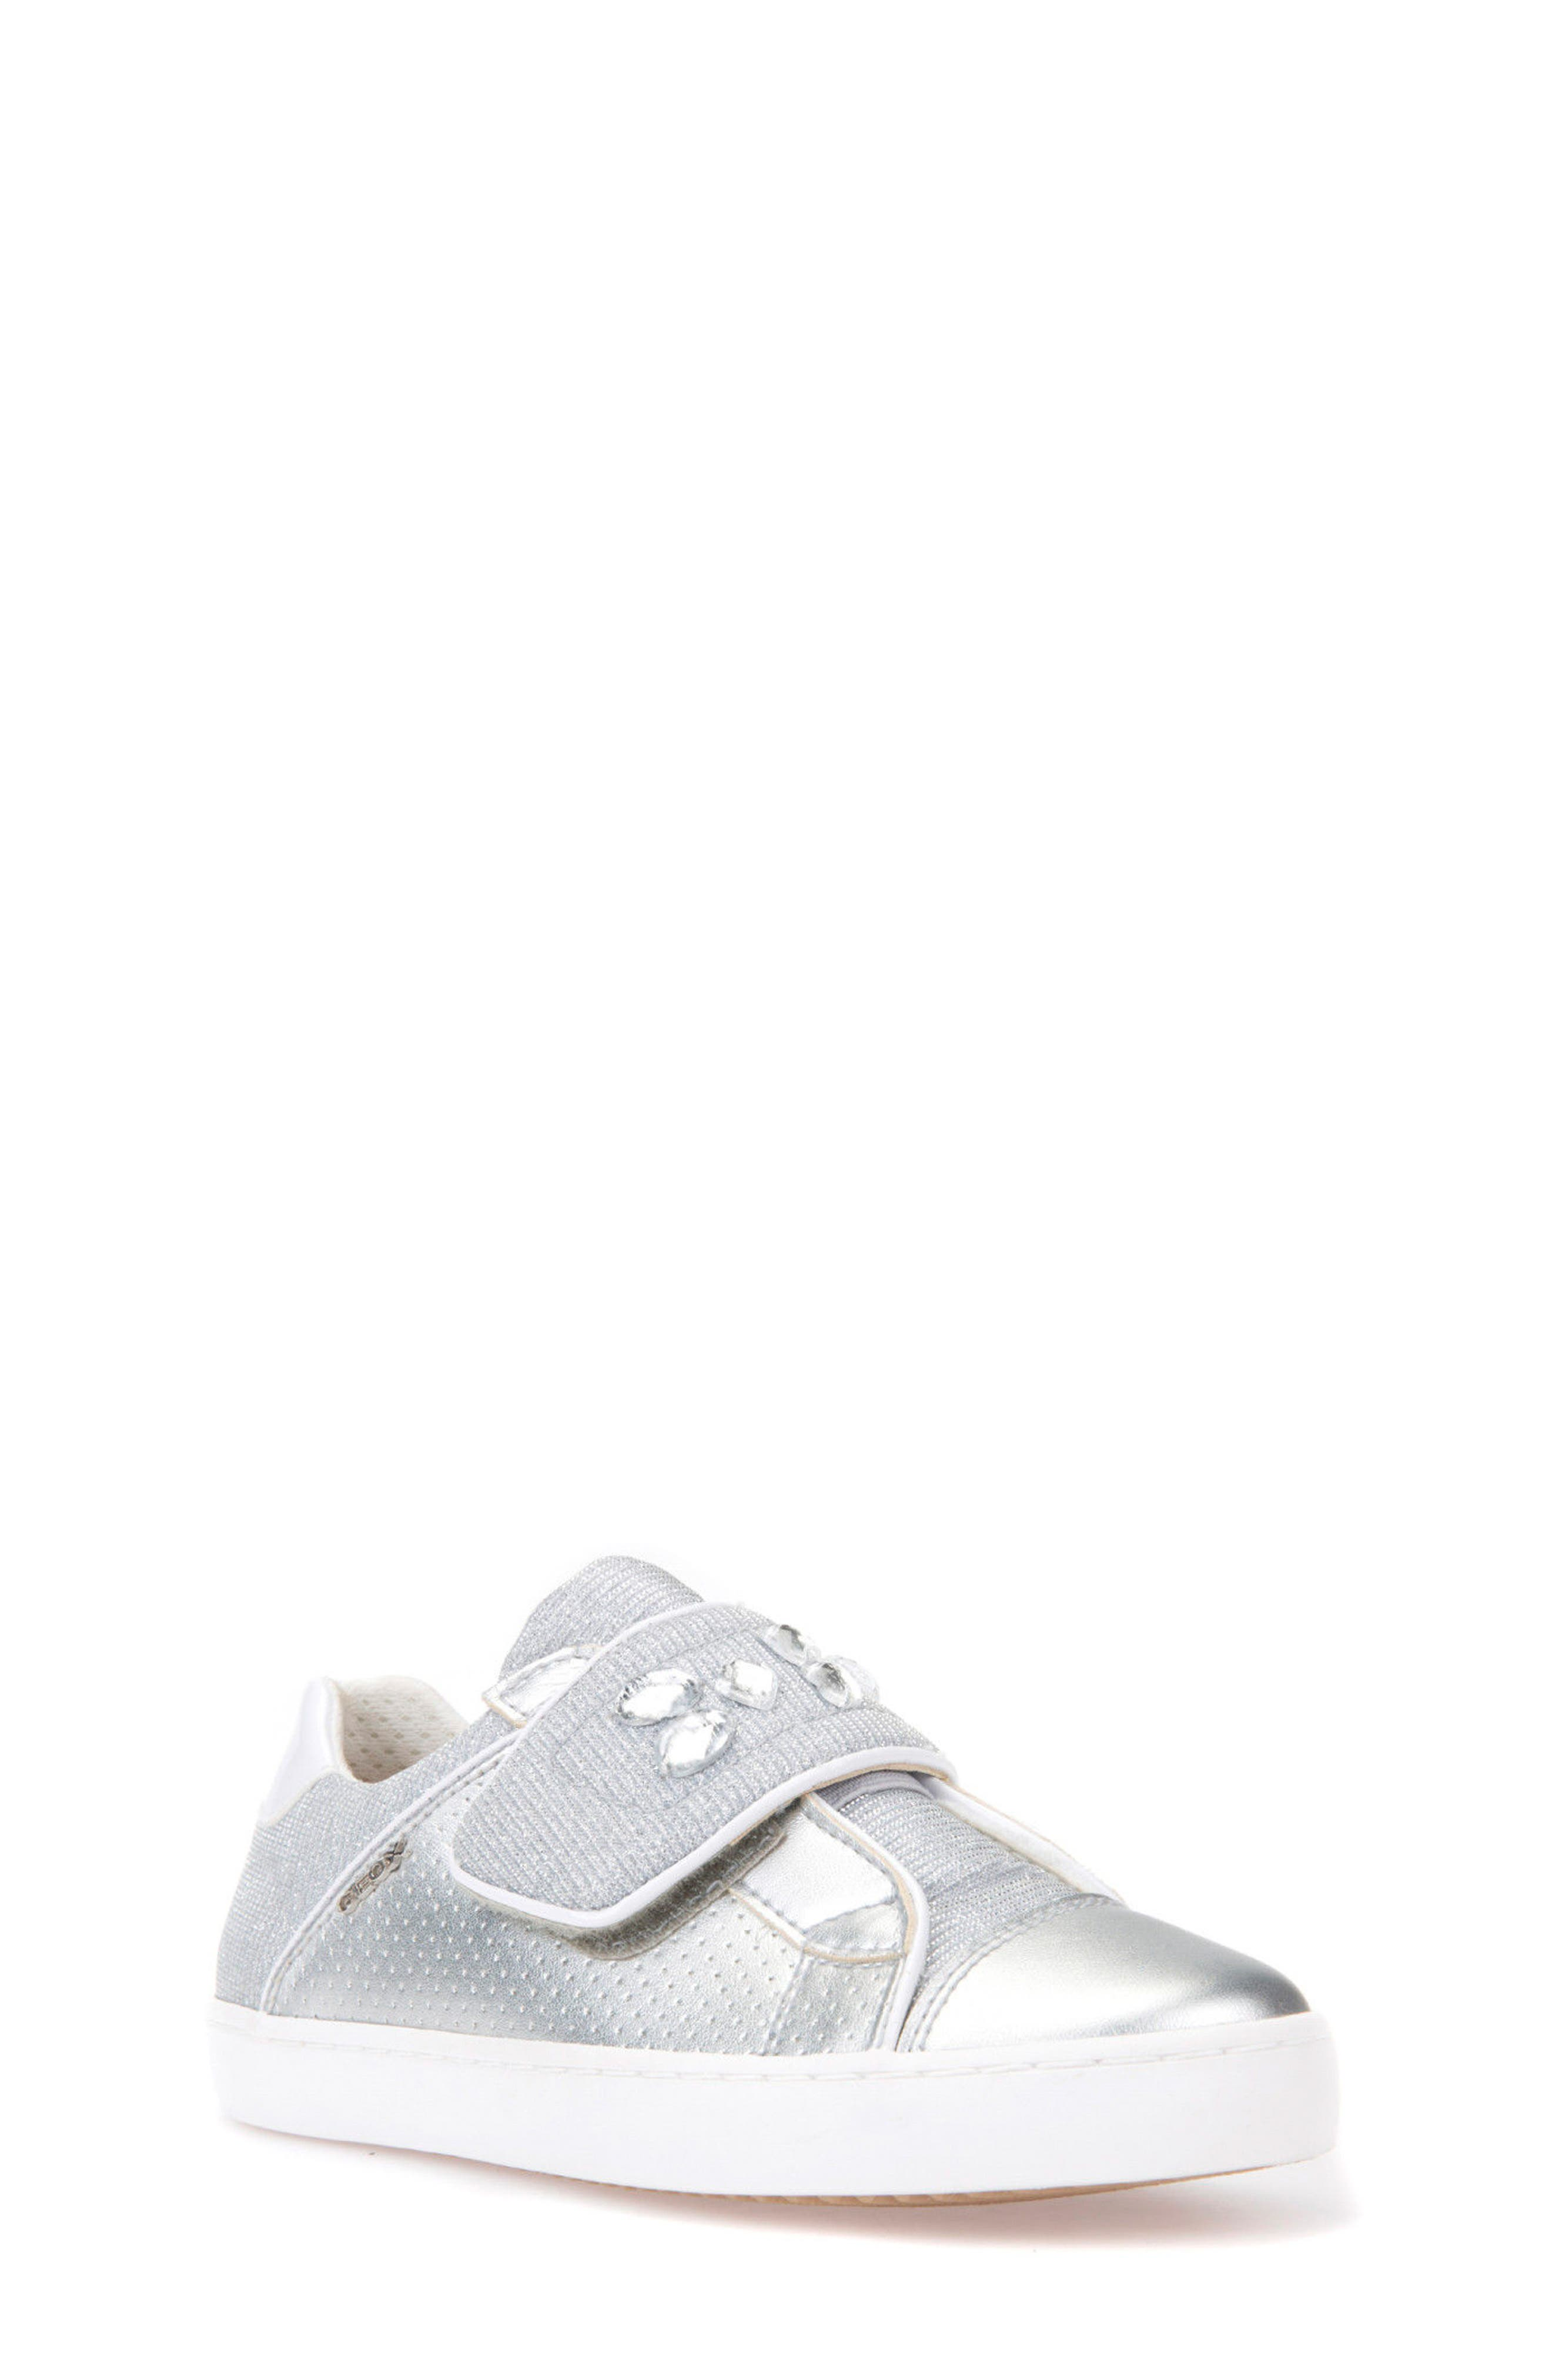 Kilwi Metallic Embellished Sneaker,                         Main,                         color, Silver